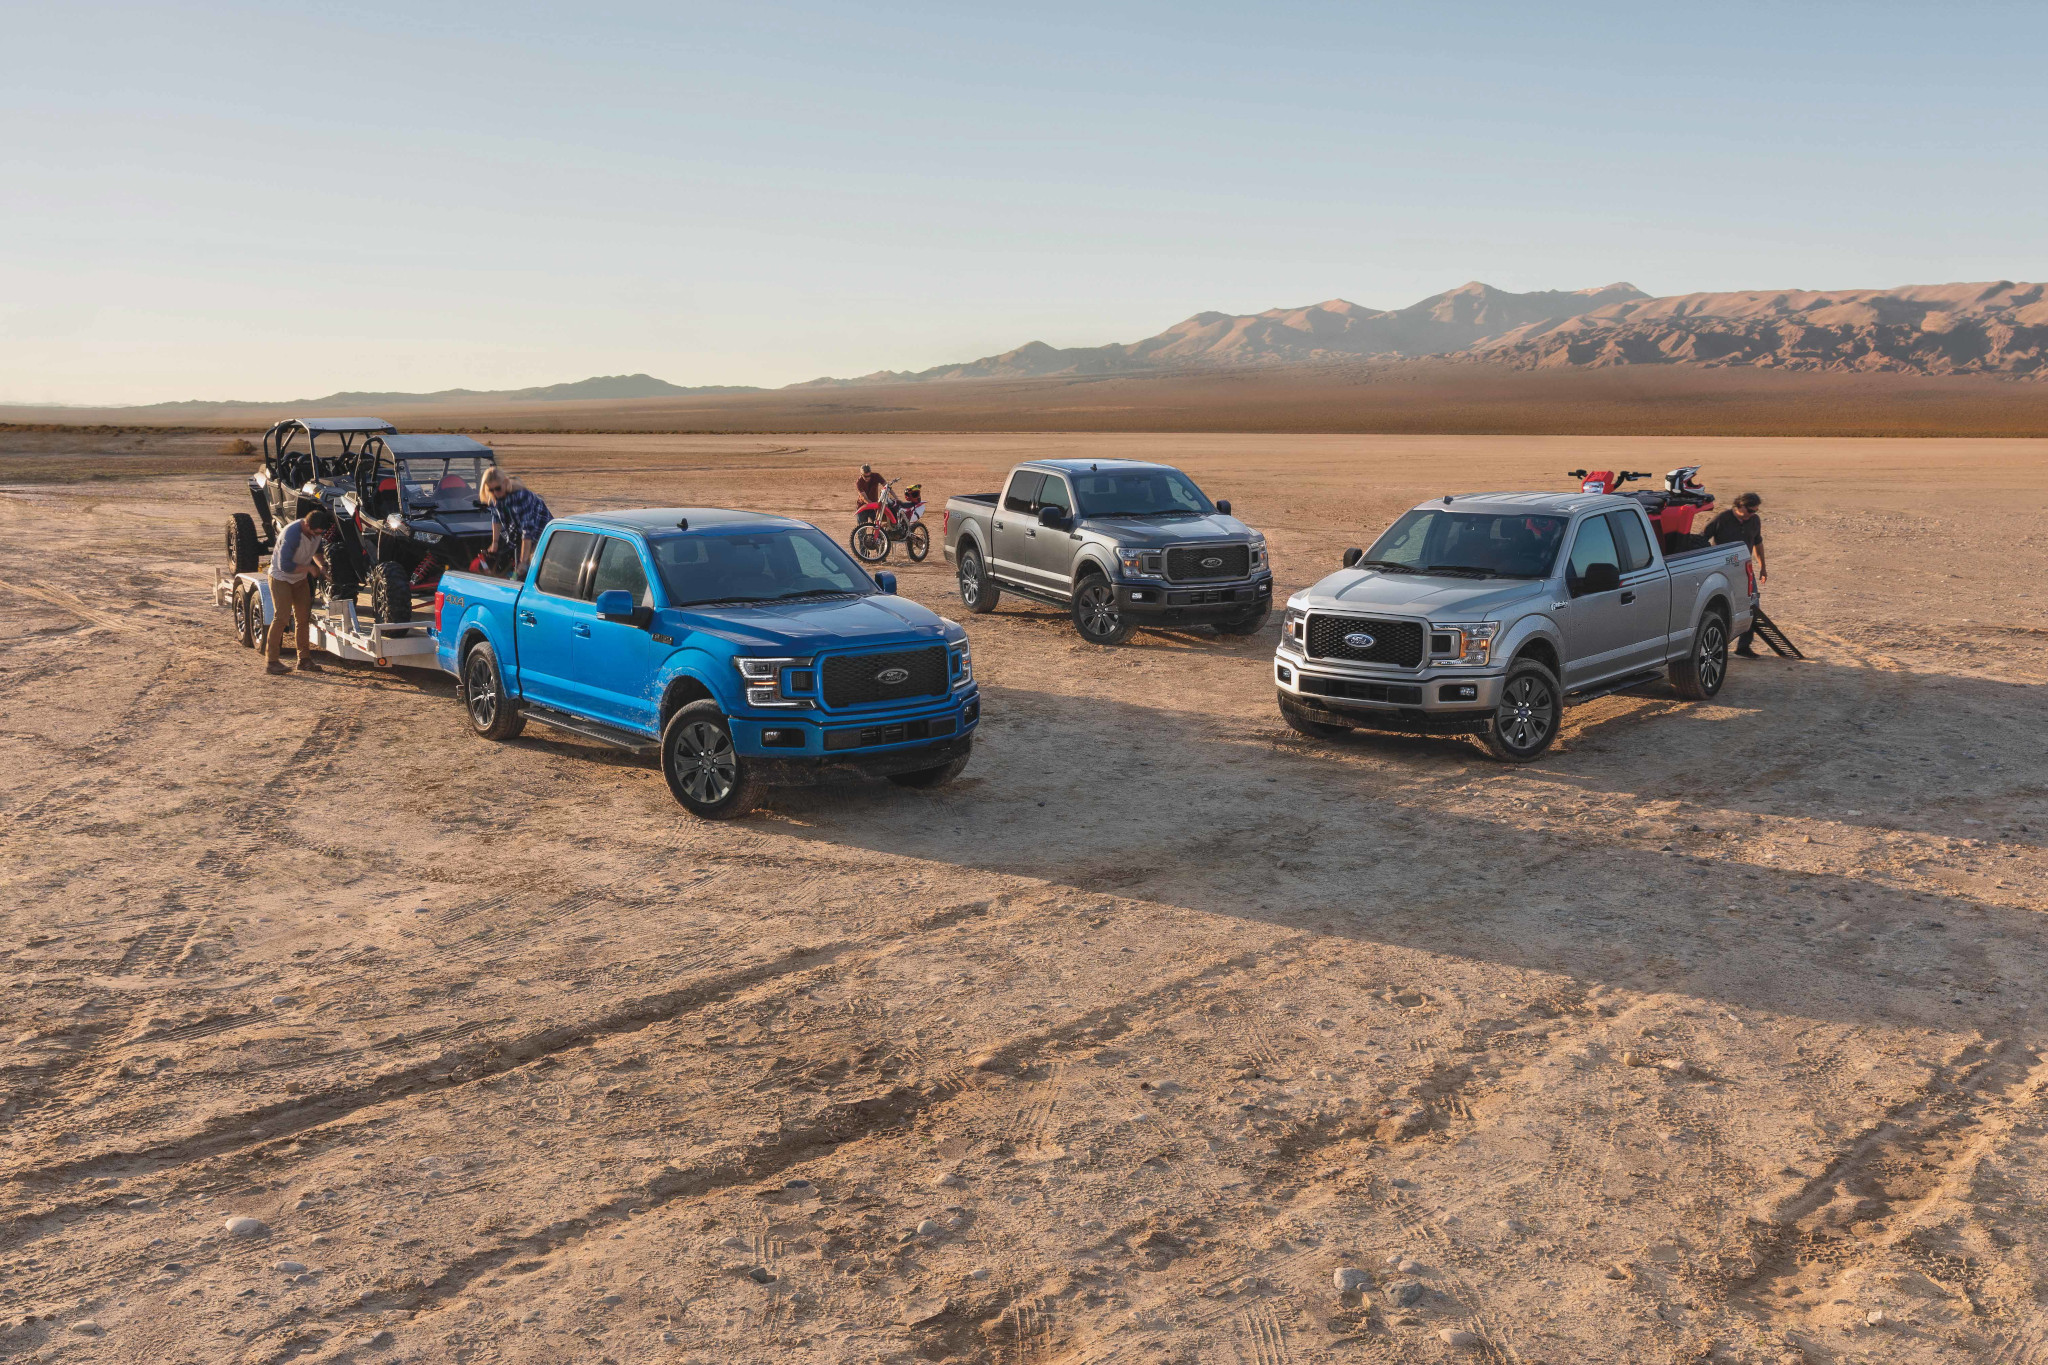 Ford F-150: Which Should You Buy, 2019 or 2020? via @carsdotcom